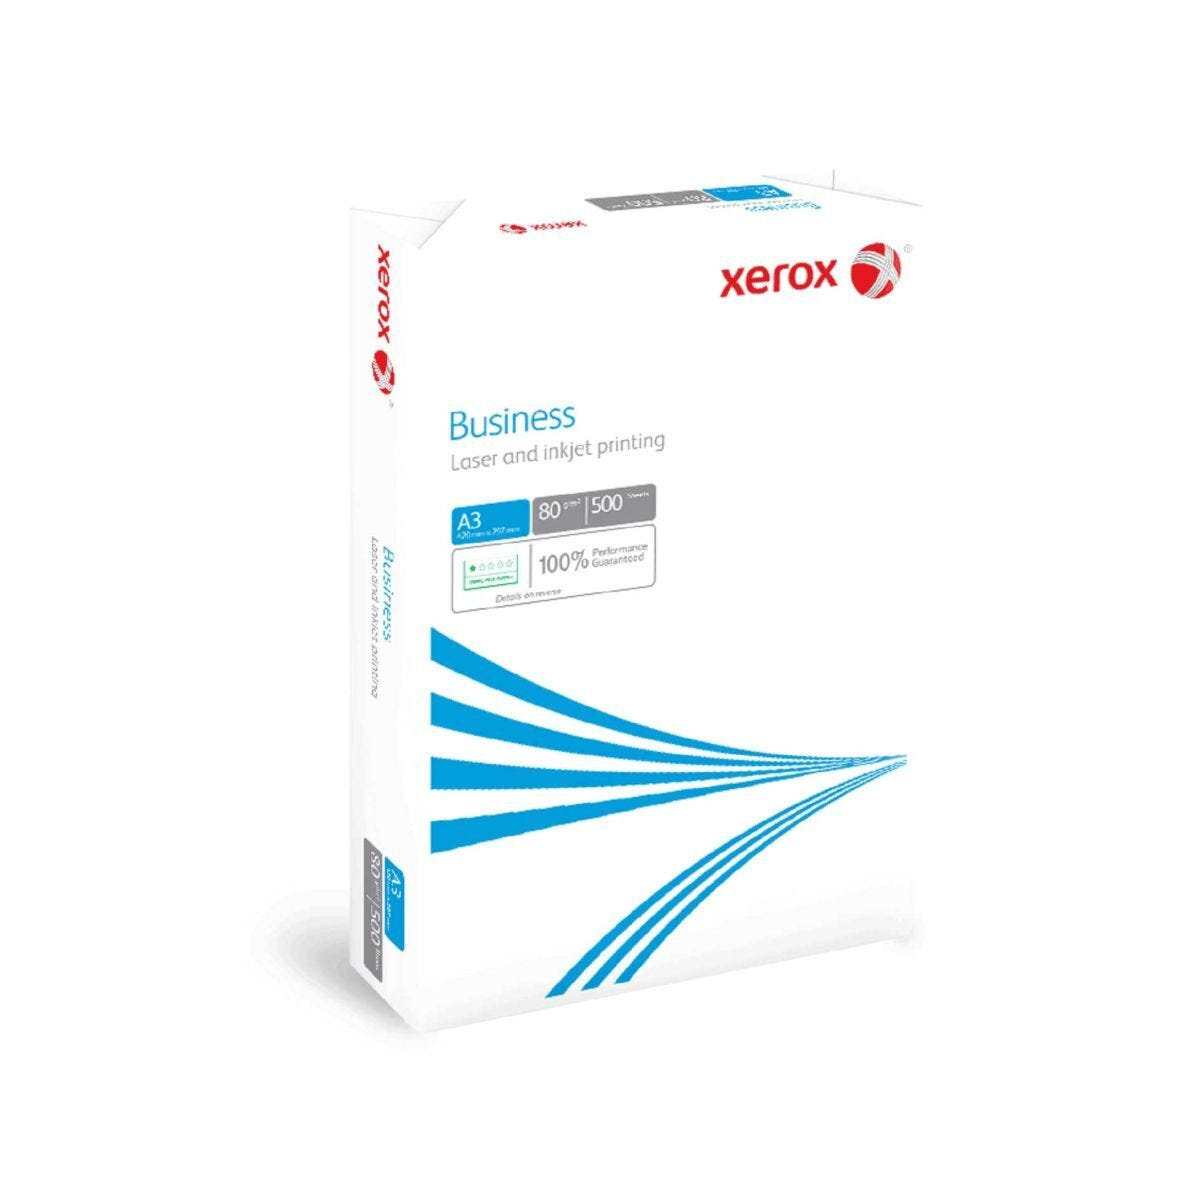 Xerox Business Copy Ream of Paper A3 80gsm 500 Sheets